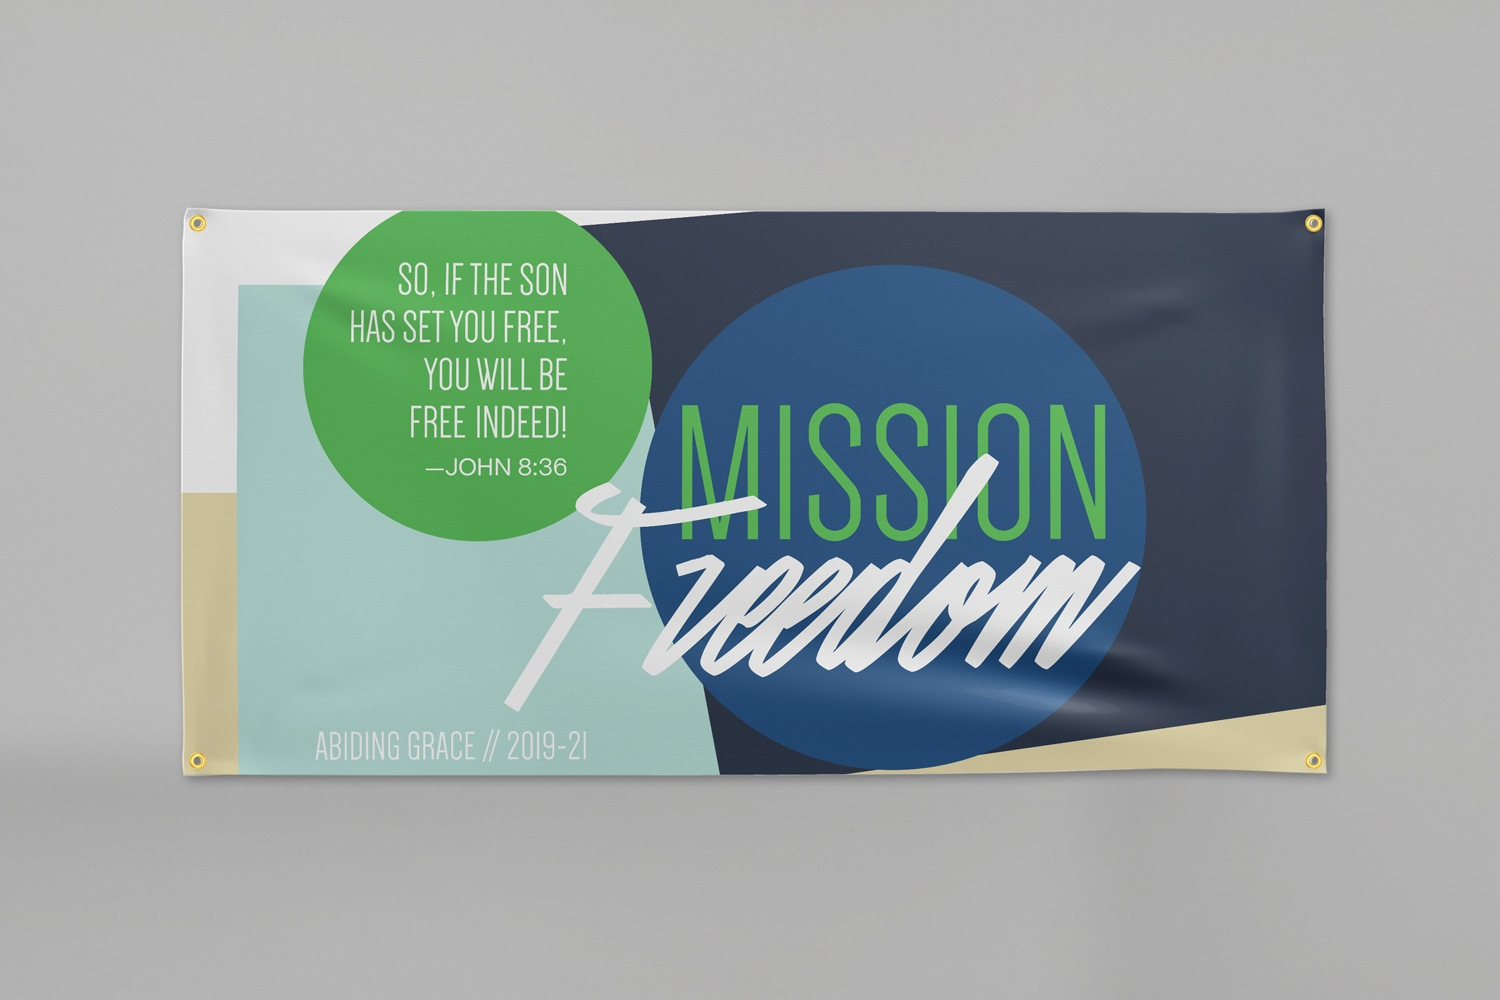 3 x 6 ft. Church capital campaign vinyl banners by Abstract Union in Lincoln, NE